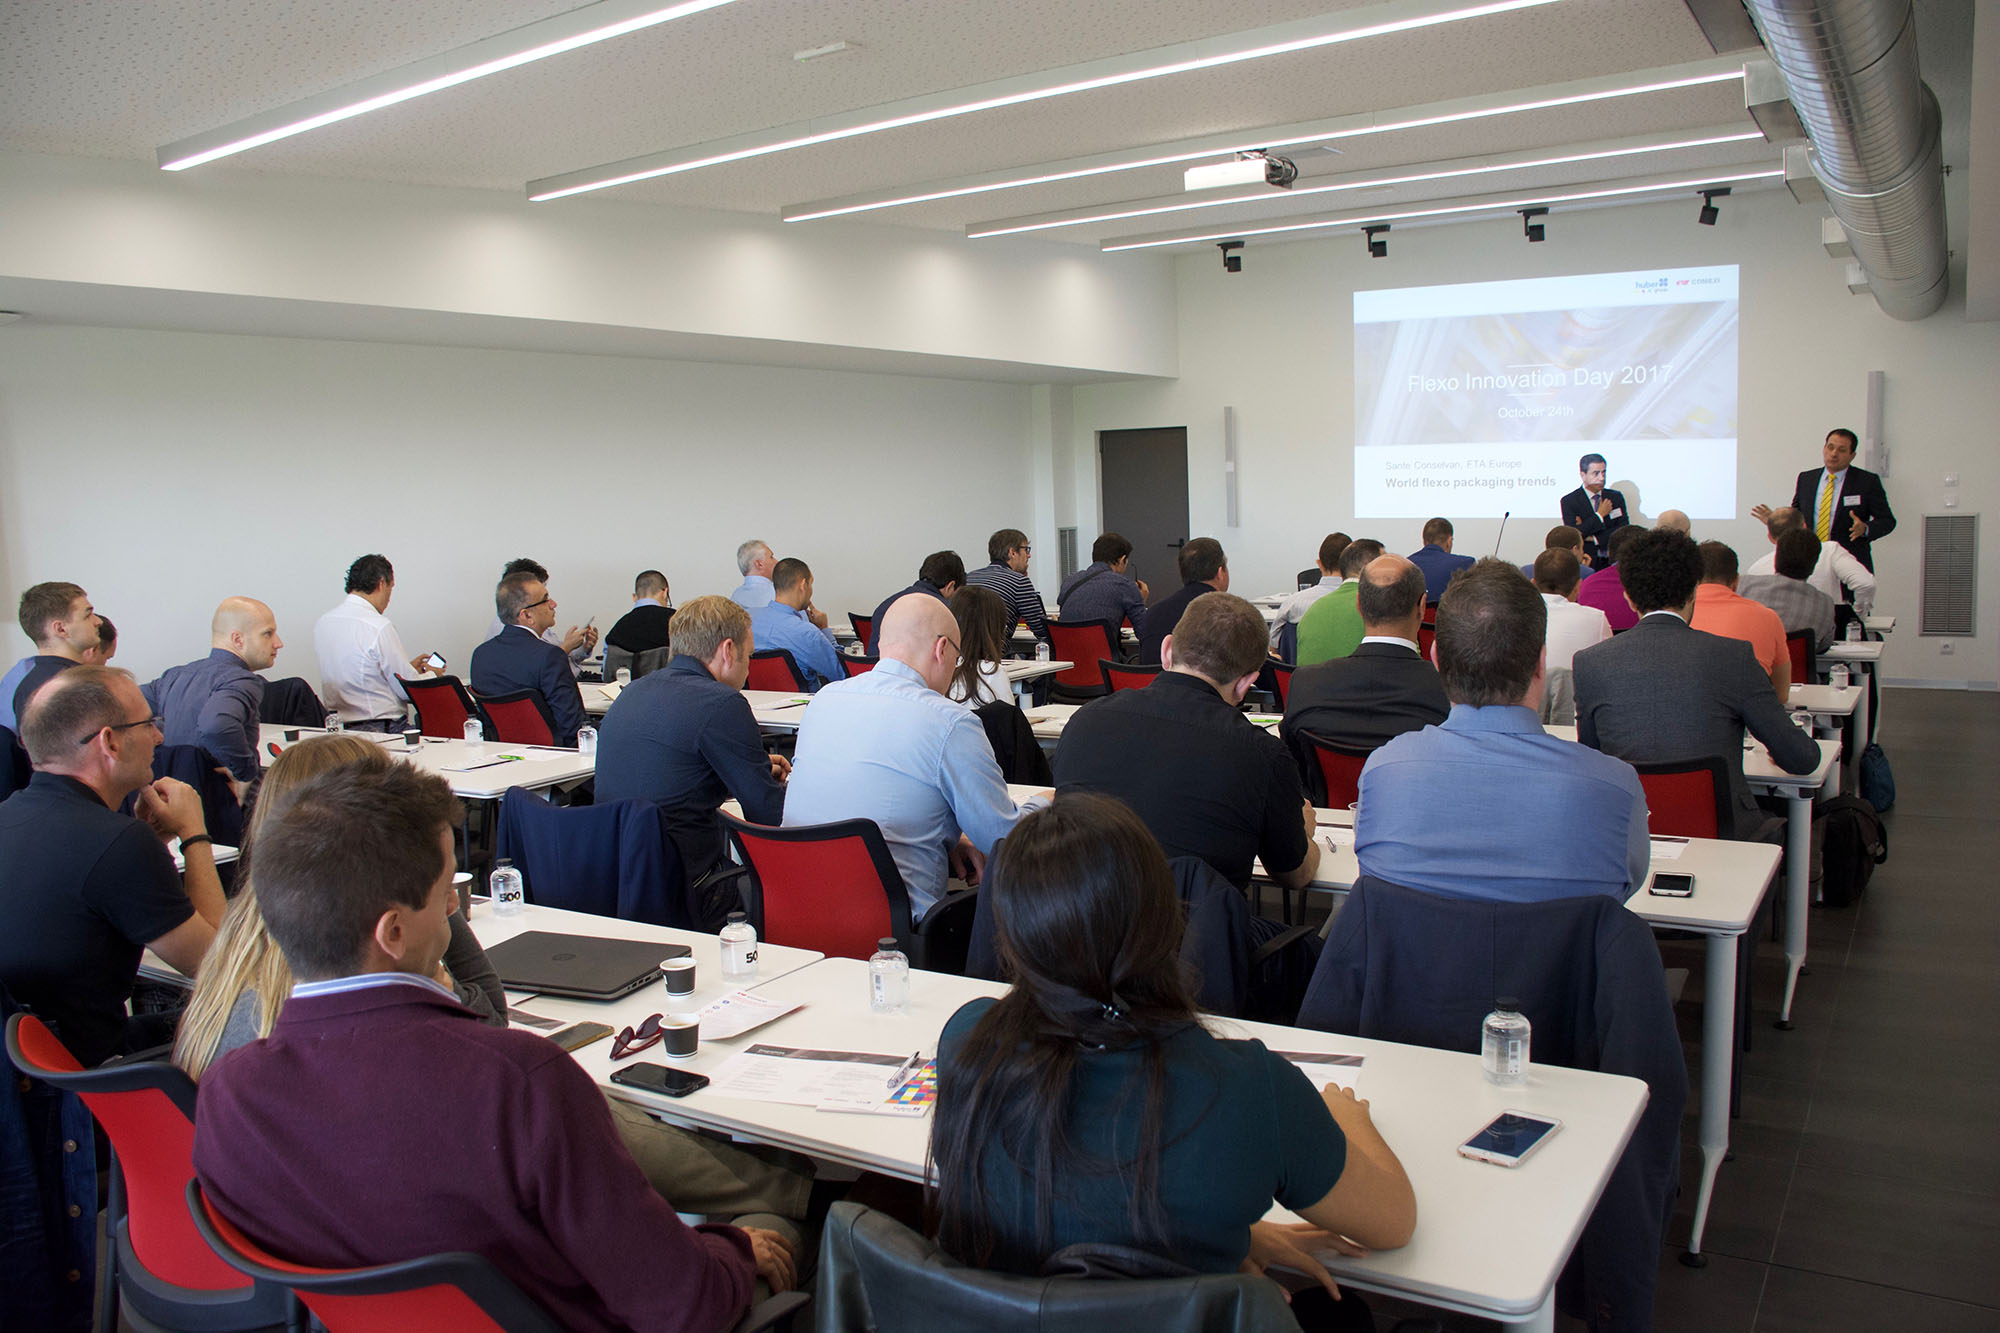 Hubergroup and Comexi present latest developments at Flexo Innovation Day